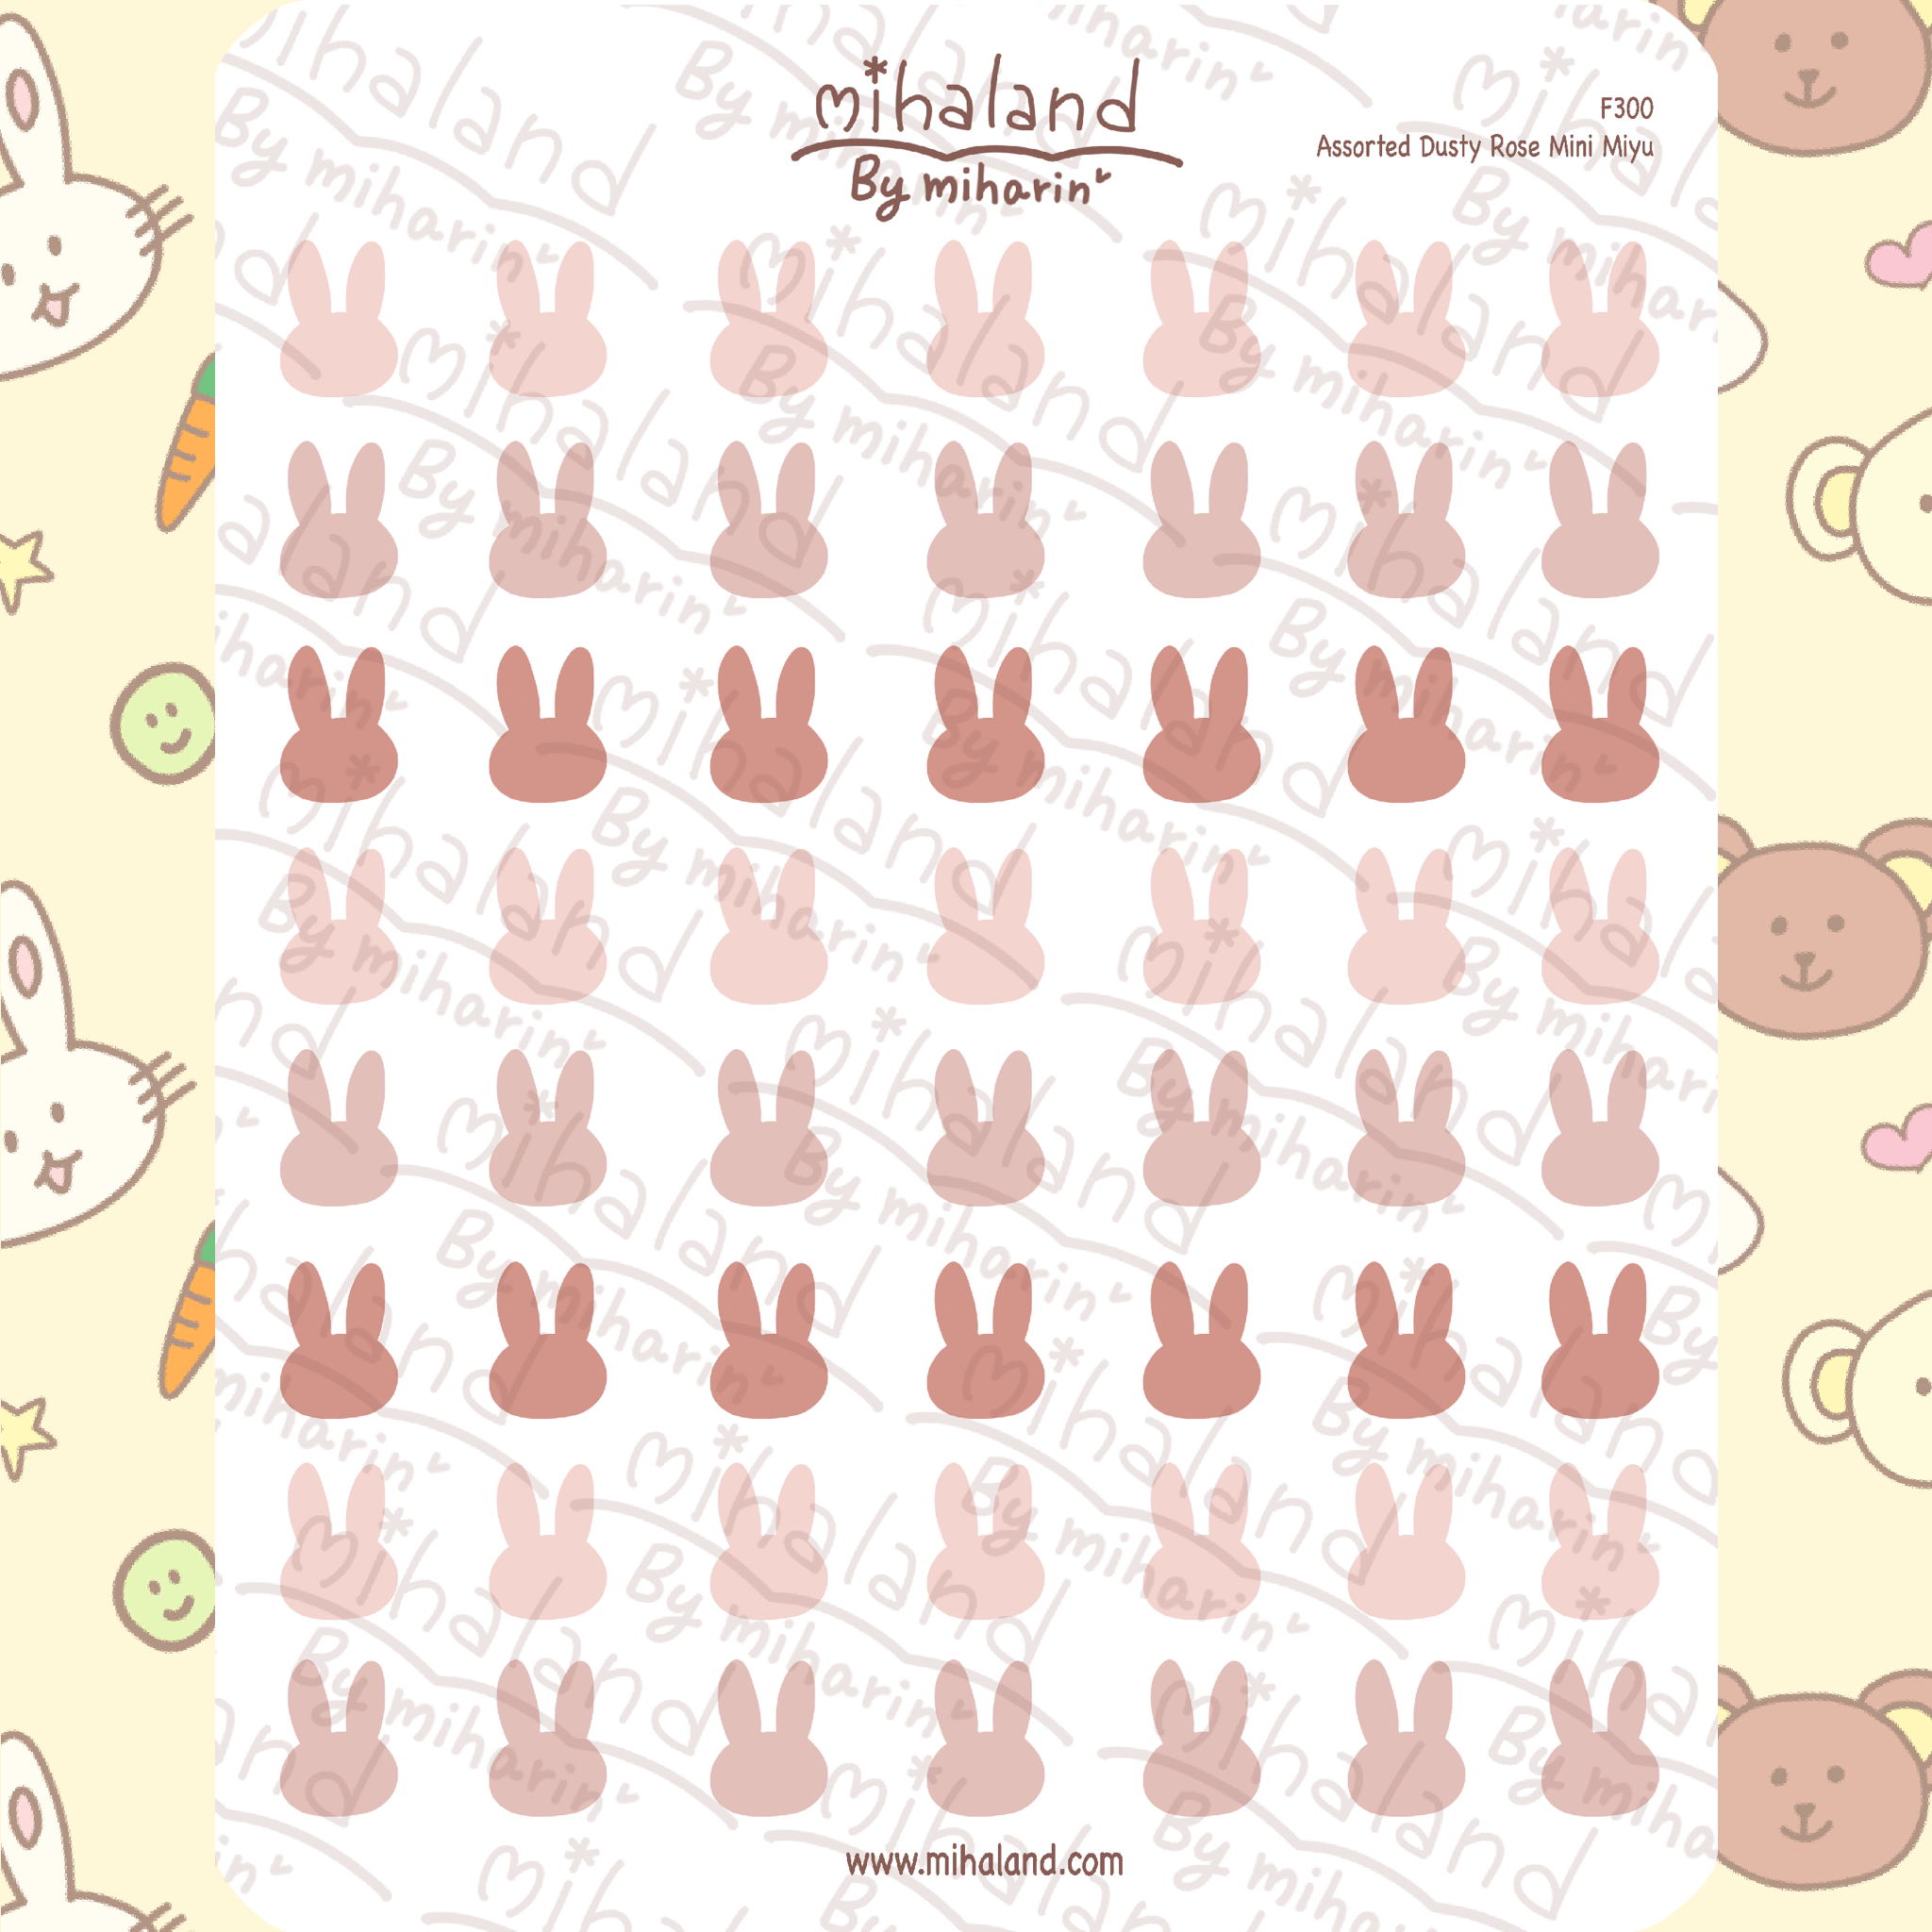 Assorted Dusty Rose Mini Miyu Planner Stickers (F300)